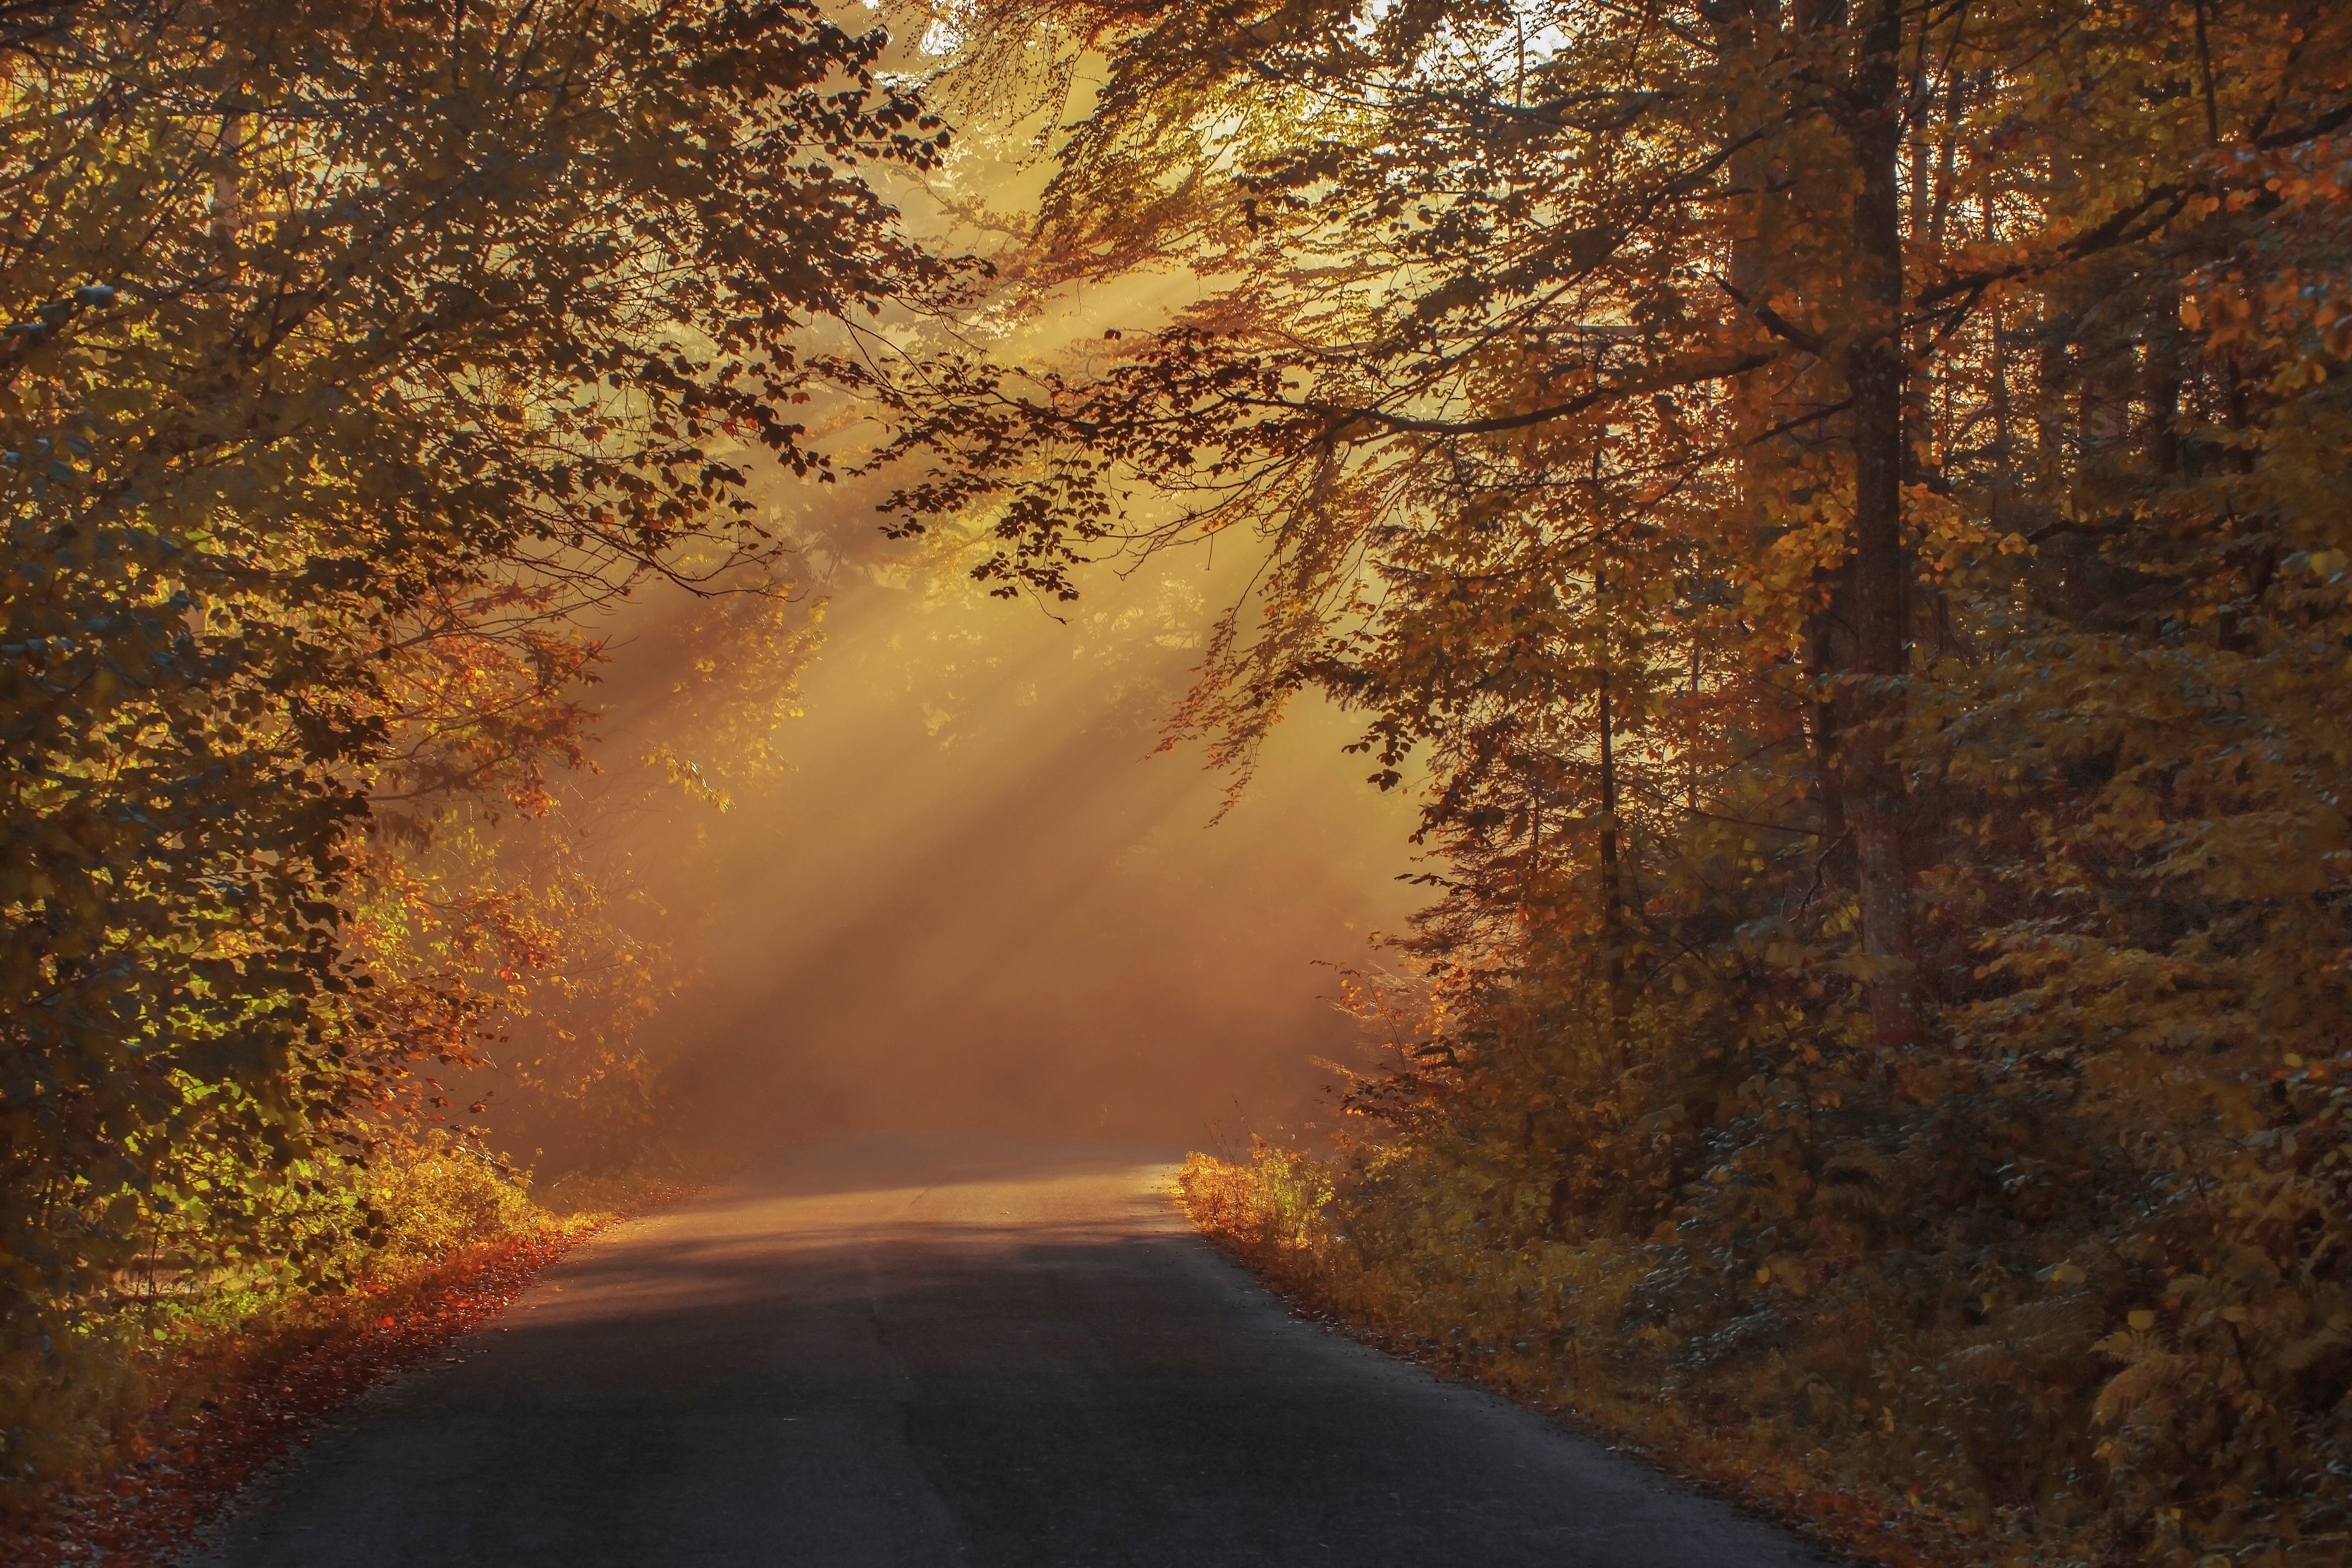 Gray Asphalt Road in Between Brown Orange Leaf Trees during Daytime, Autumnal, Rays, Wood, Water, HQ Photo